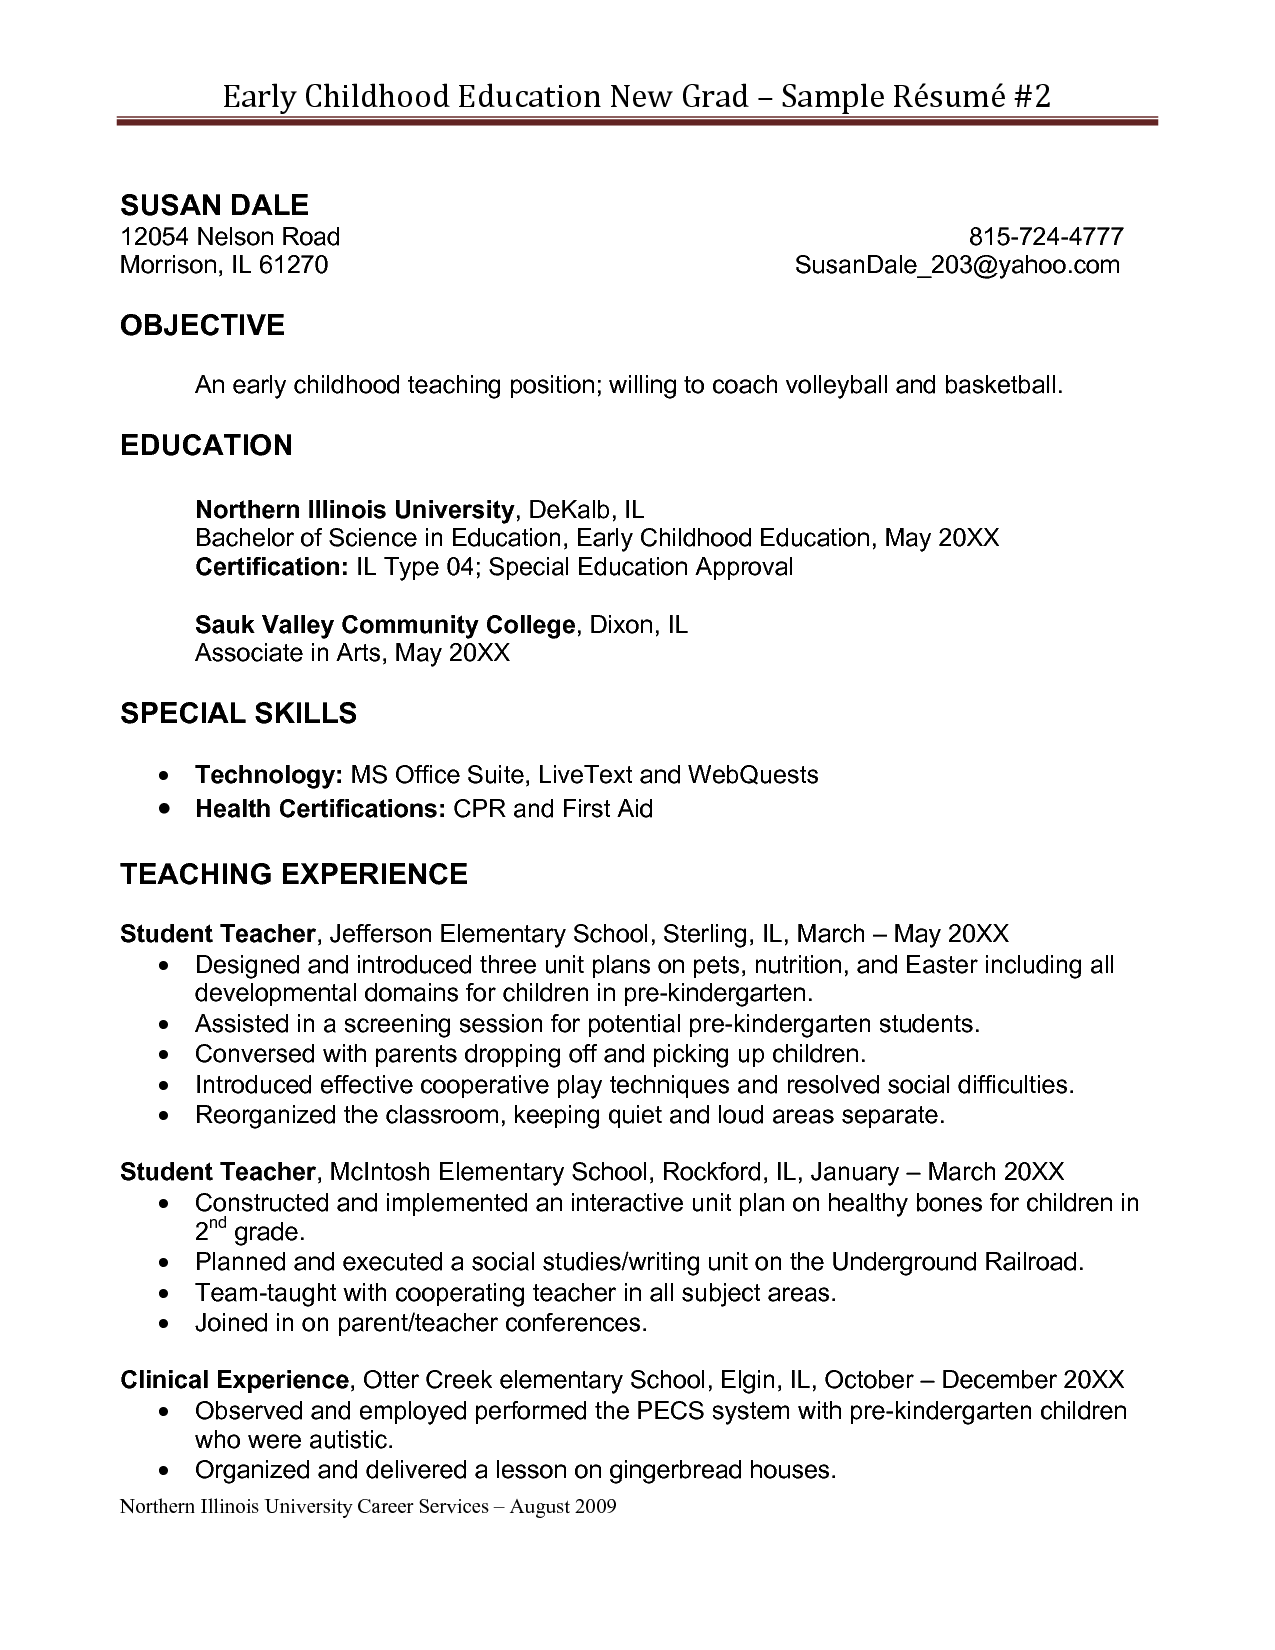 early childhood education resume objective | College | Pinterest ...